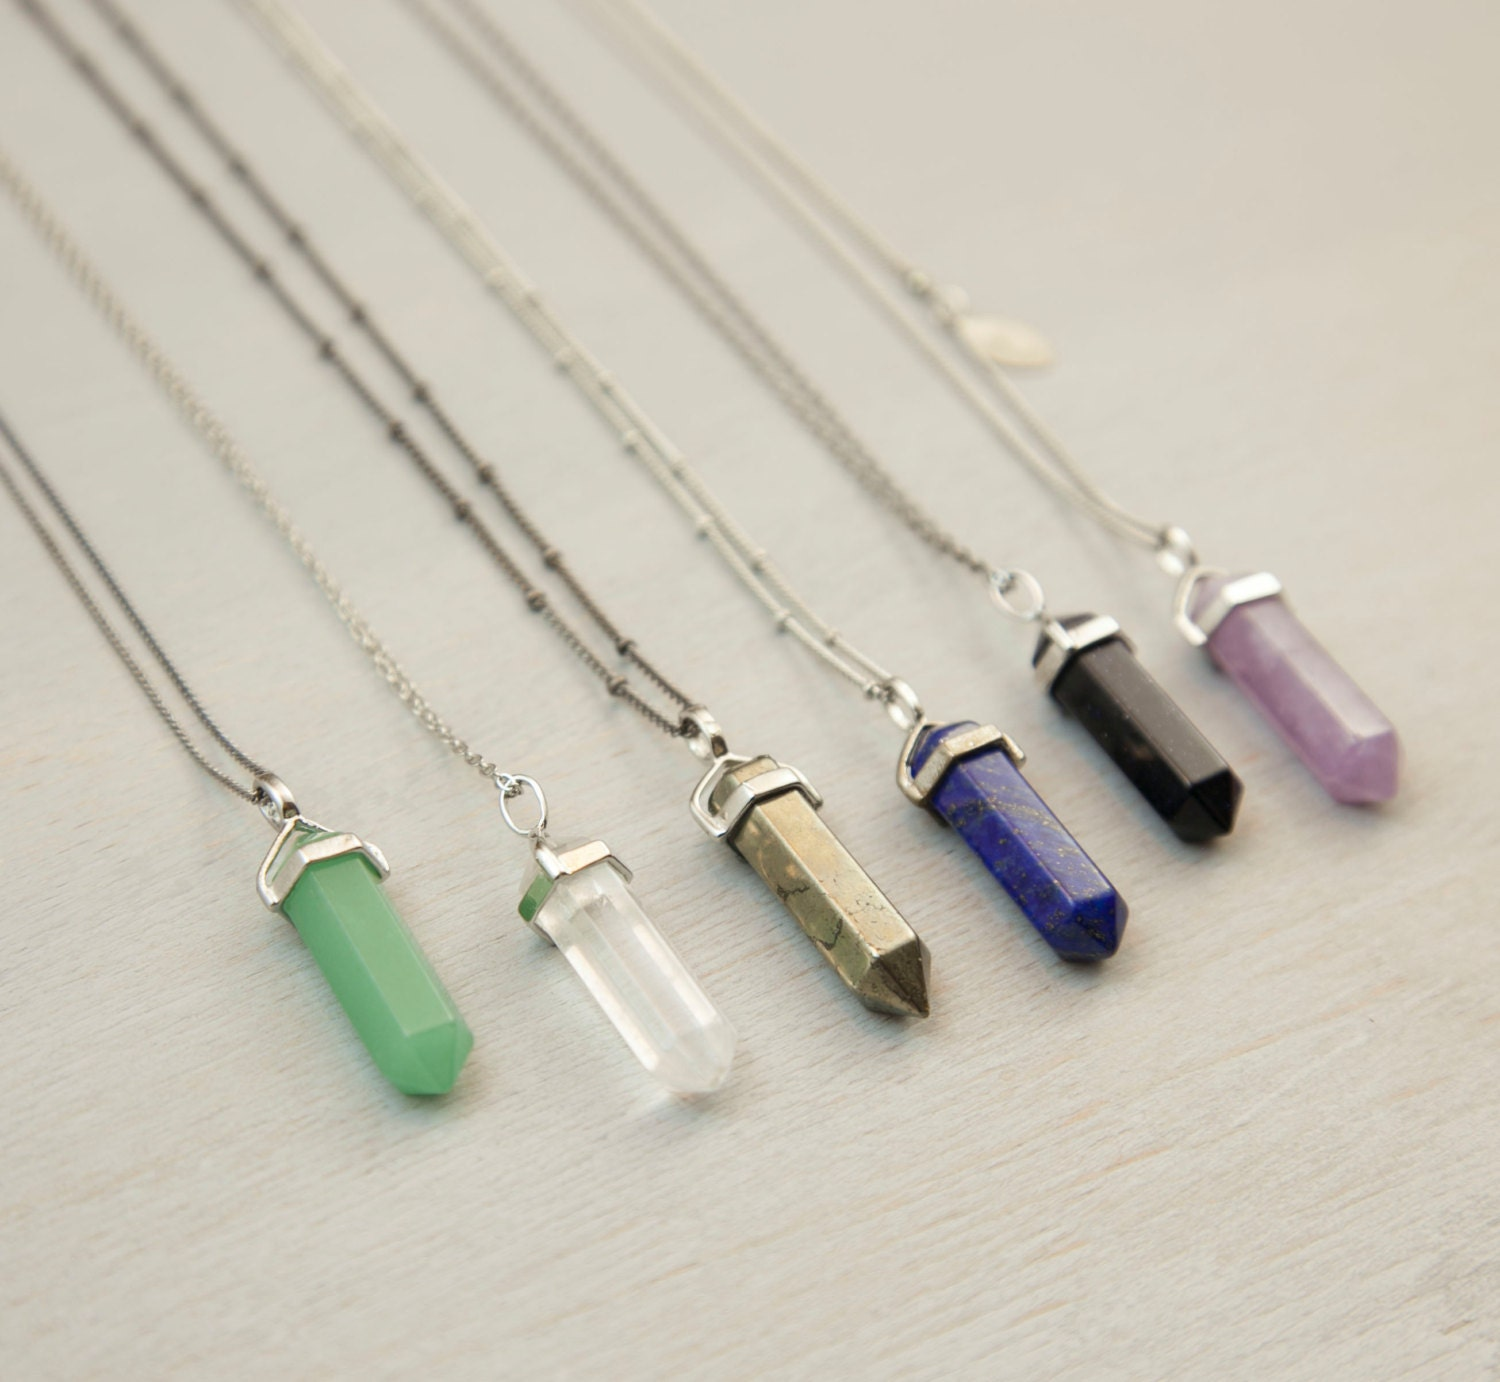 products necklaces quartz stone multi crystal product pendants natural cryst shape bullet image grande color necklace savedom